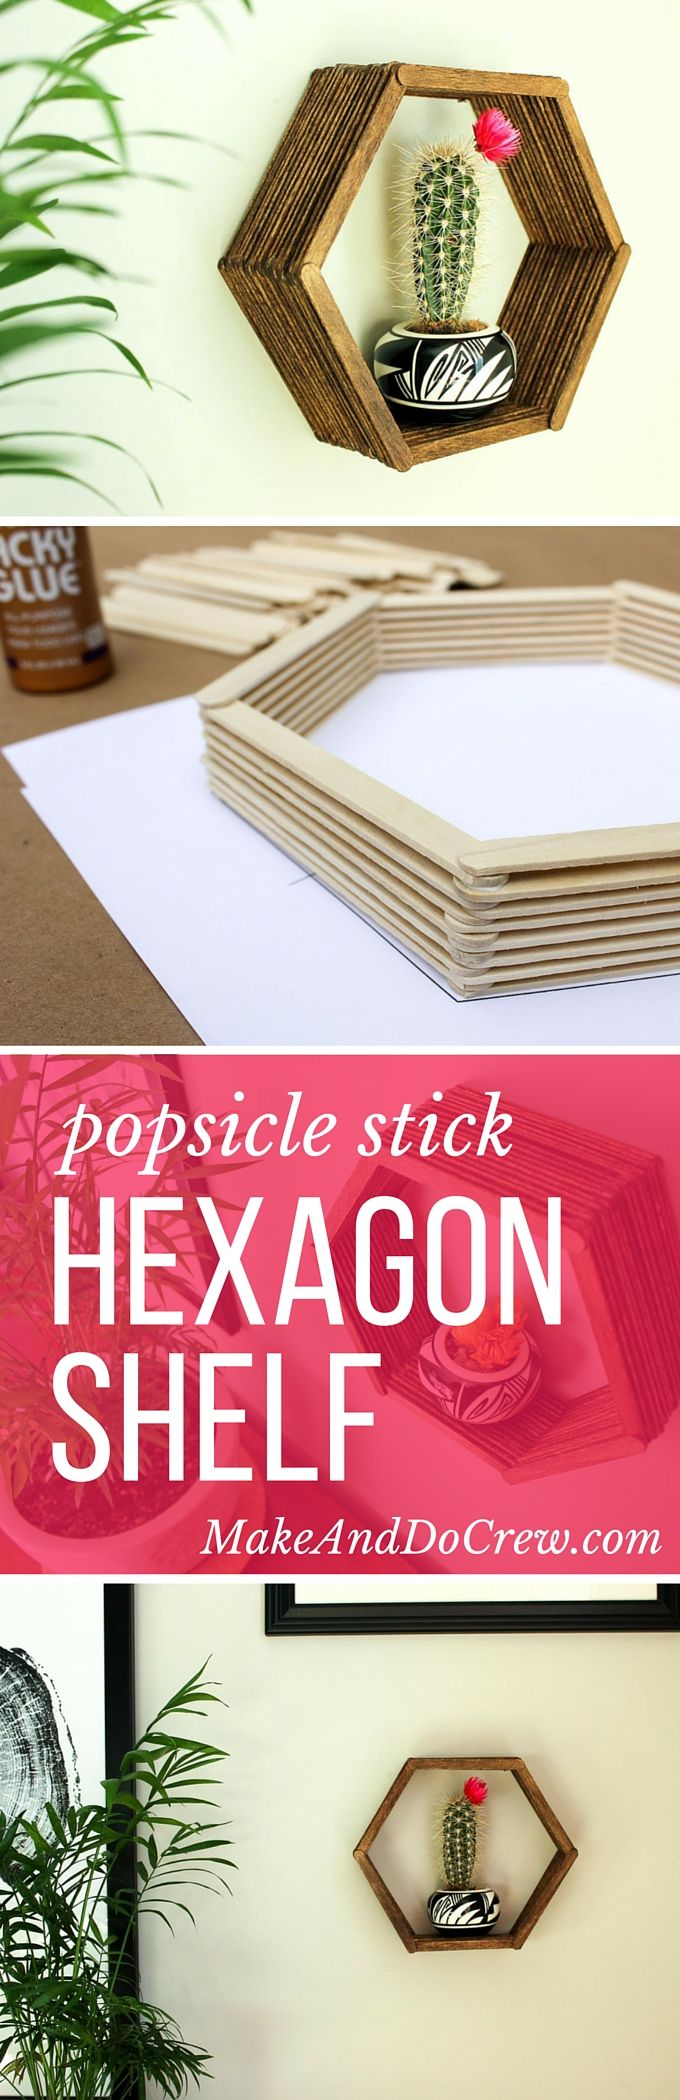 Popsicle Stick Hexagon Shelf -- Easy DIY Wall Art